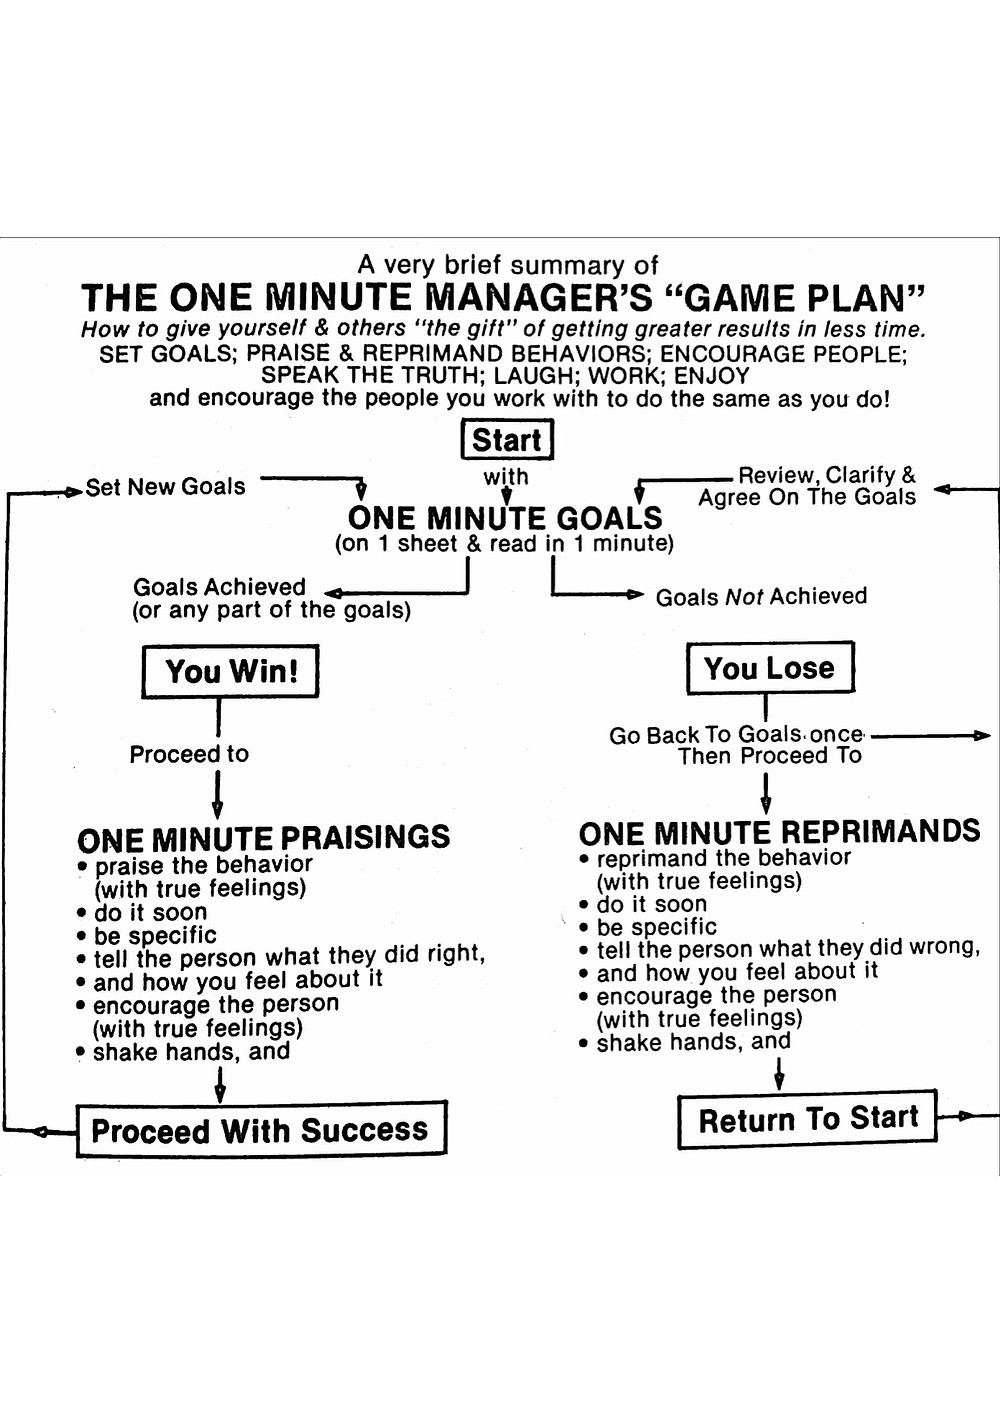 From The One Minute Manager